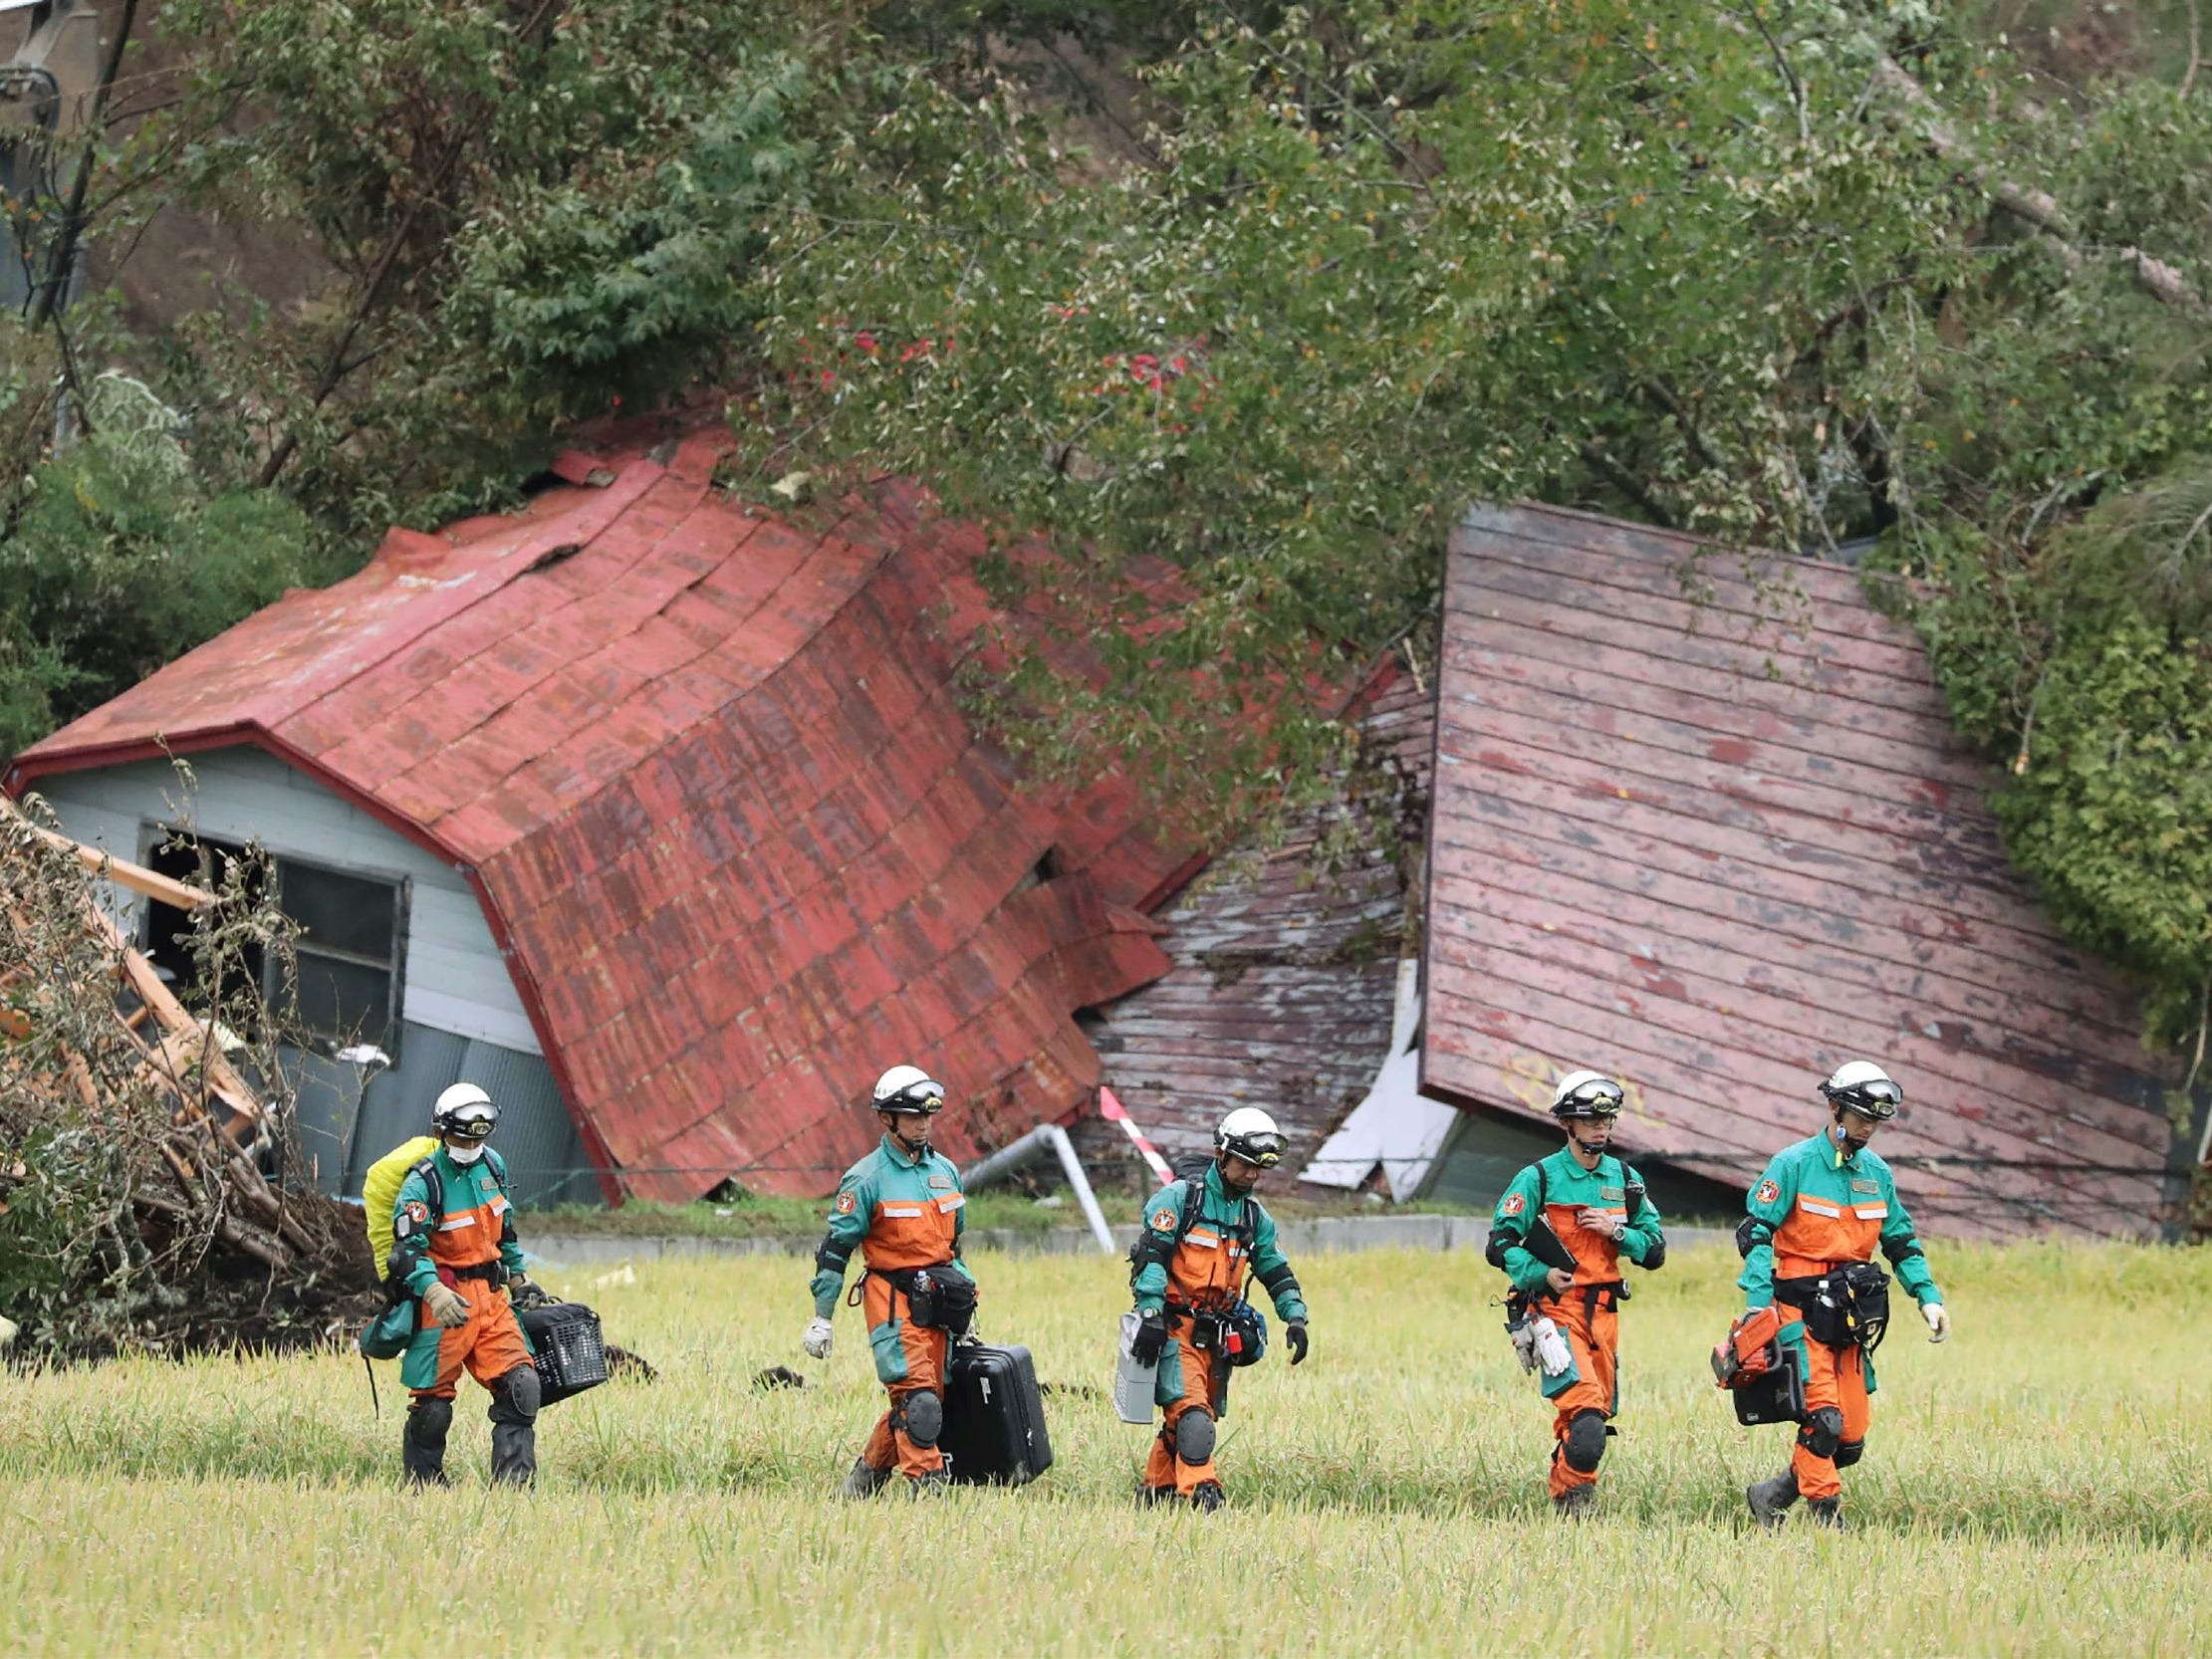 Rescue teams from Tokyo Police search for missing people in Astuma on Sept. 9, 2018 after a 6.6-magnitude earthquake hit the northern Japanese island of Hokkaido on September 6.